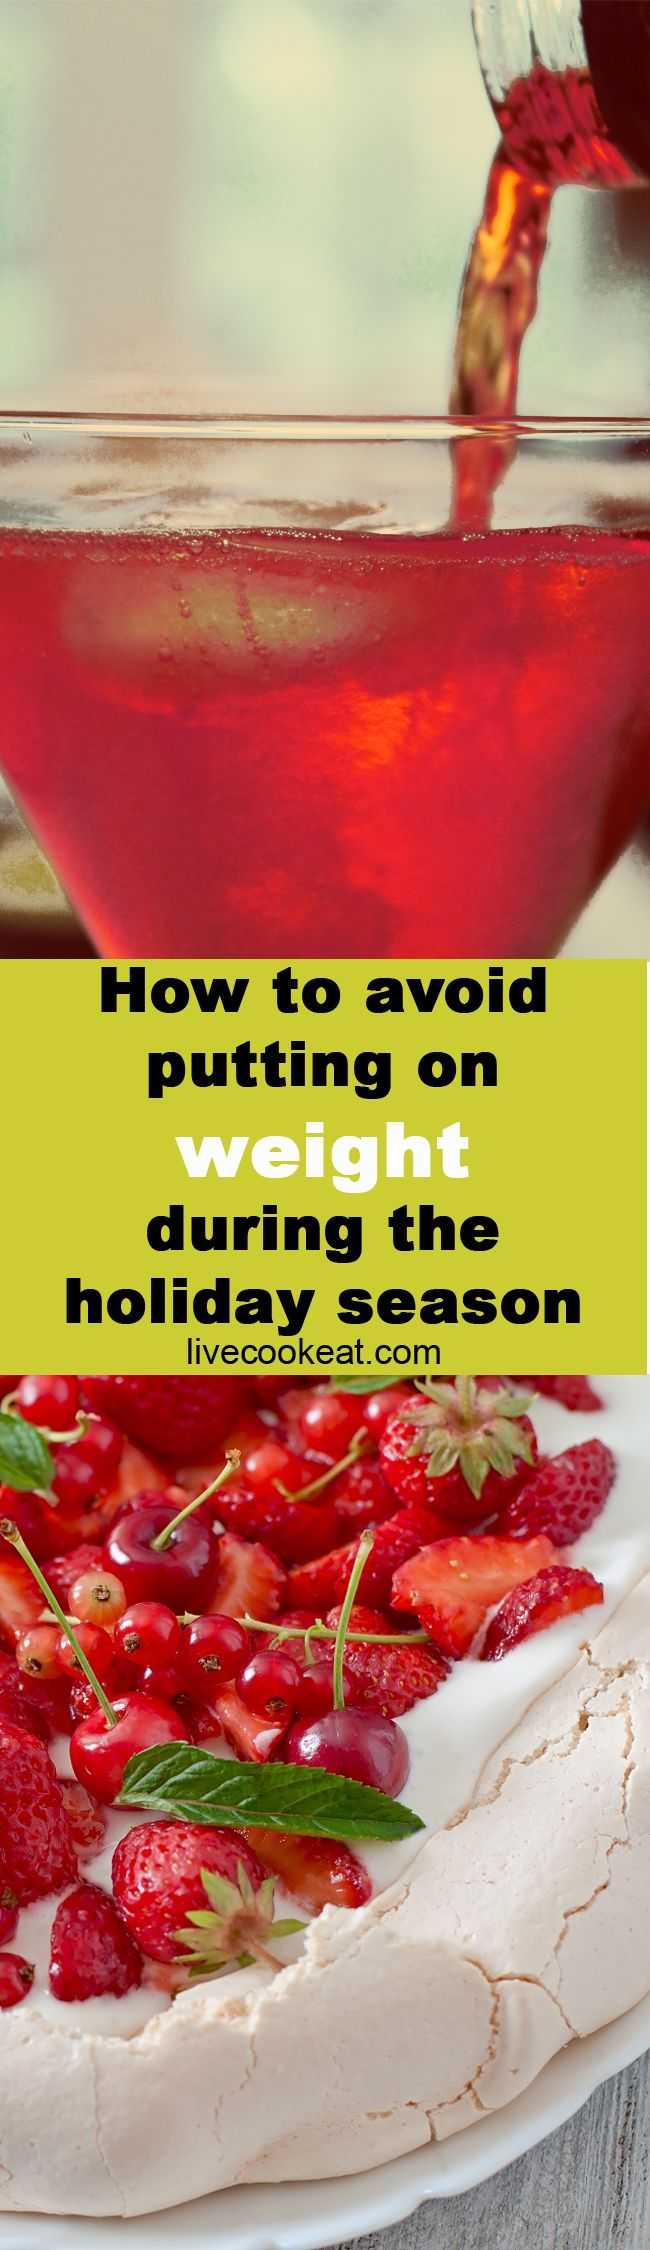 Avoid that spare tyre and having to buy new jeans next year. Try these tips to help you make it through the holiday season without putting on weight